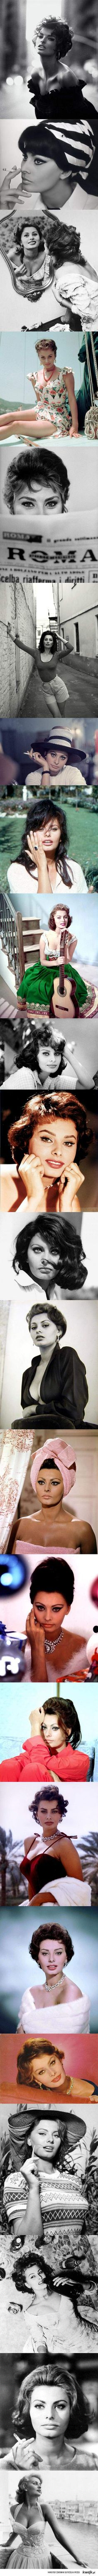 Sophia Loren- Ironically enough, I would love to name my daughter Sophia Lorena. Sophia is one of my favorite names & Lorena is my late mother in law. Sophia Loren is a gorgeous piece of work, so it's not a bad legendary name to live up to ;)